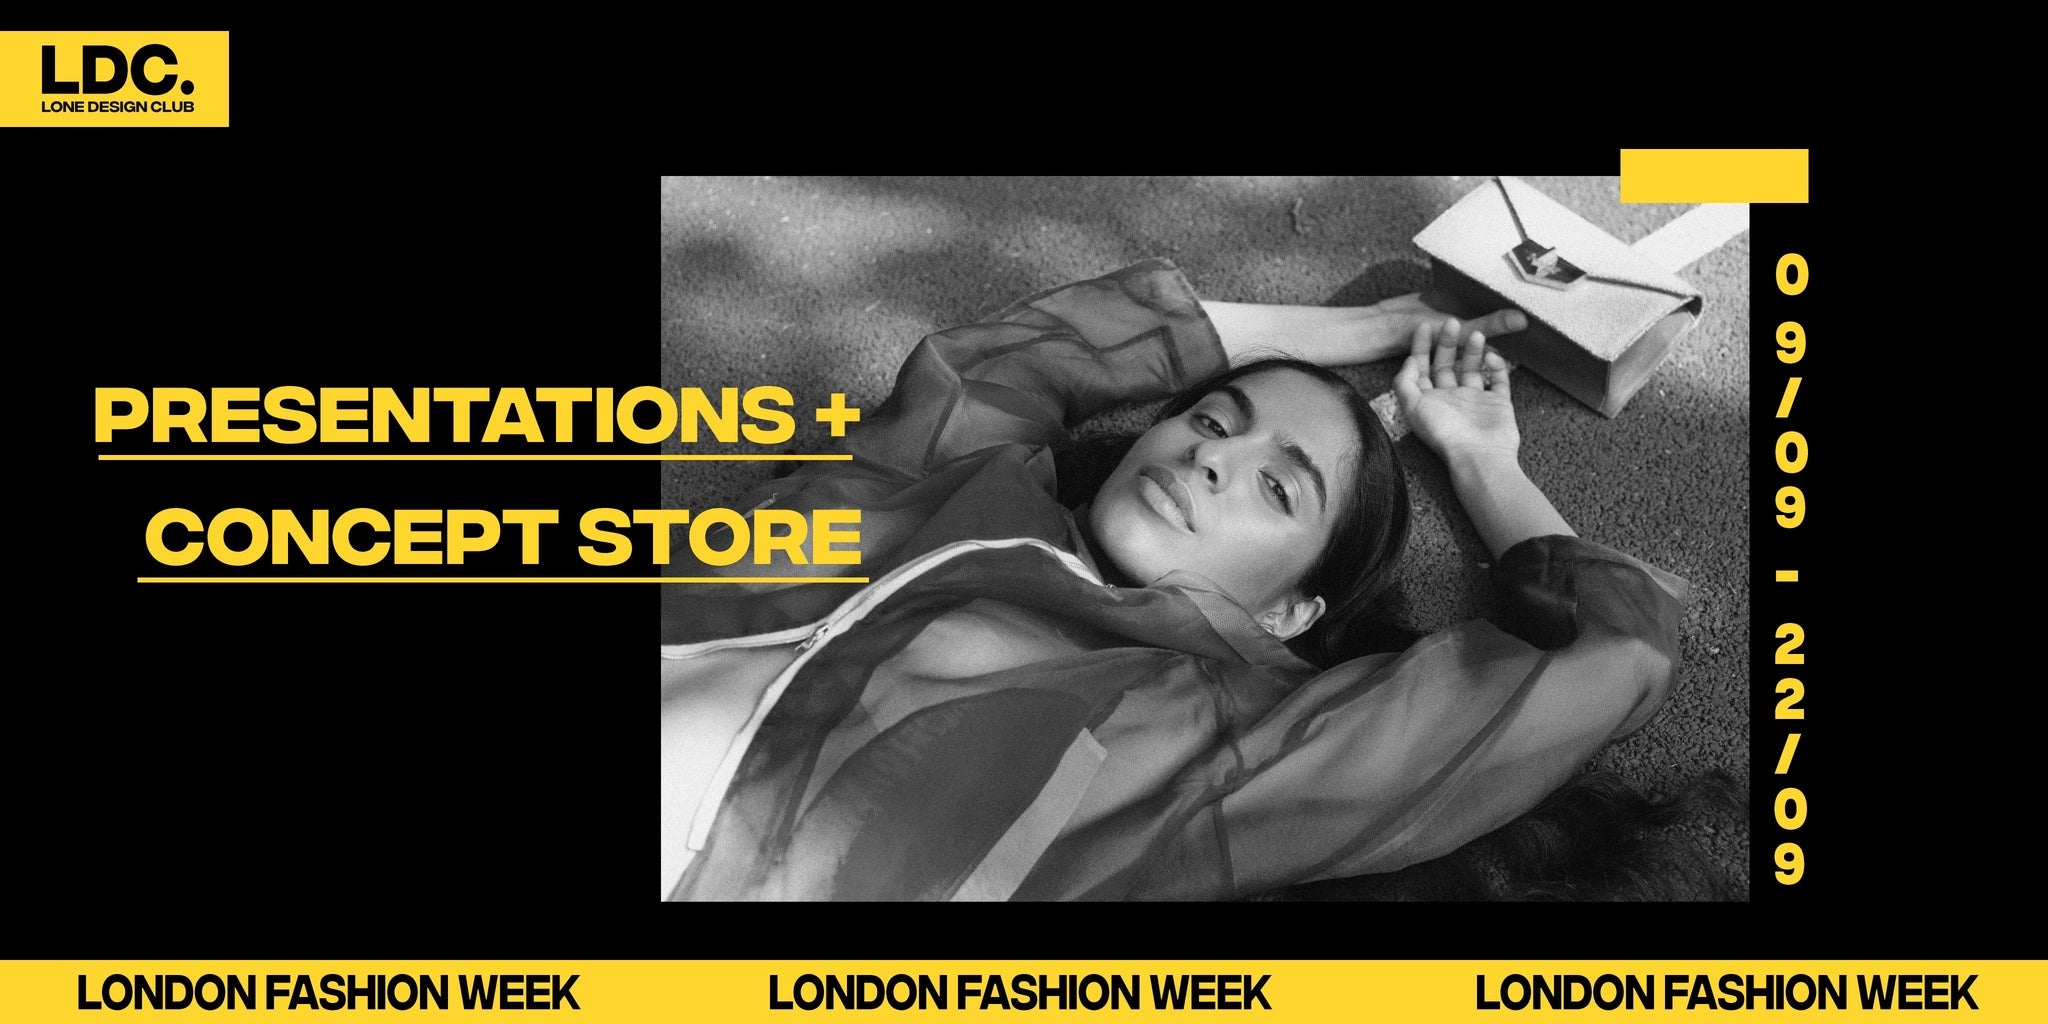 TOKKOU x LDC x LFW - Presentations + Concept Store in Covent Garden  (9th - 22nd September 2019)